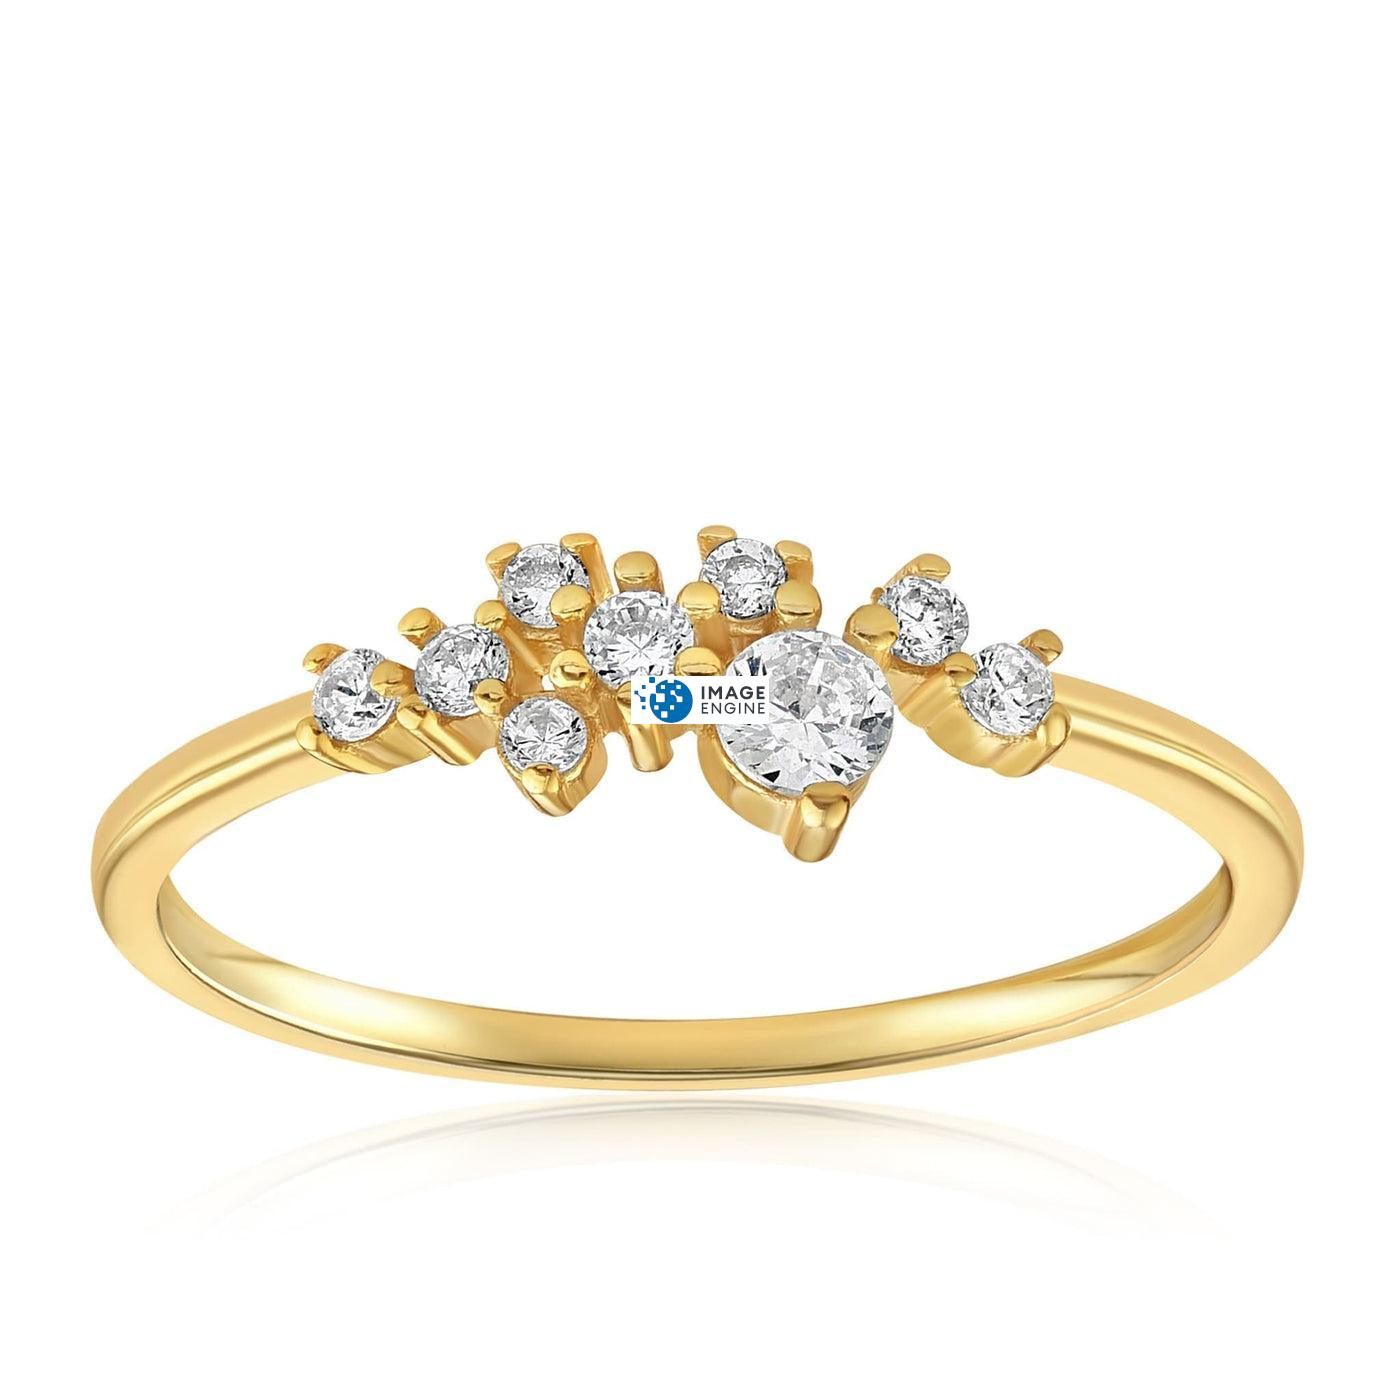 Sasha Sparkle Ring - Front View Facing Up - 18K Yellow Gold Vermeil Featured